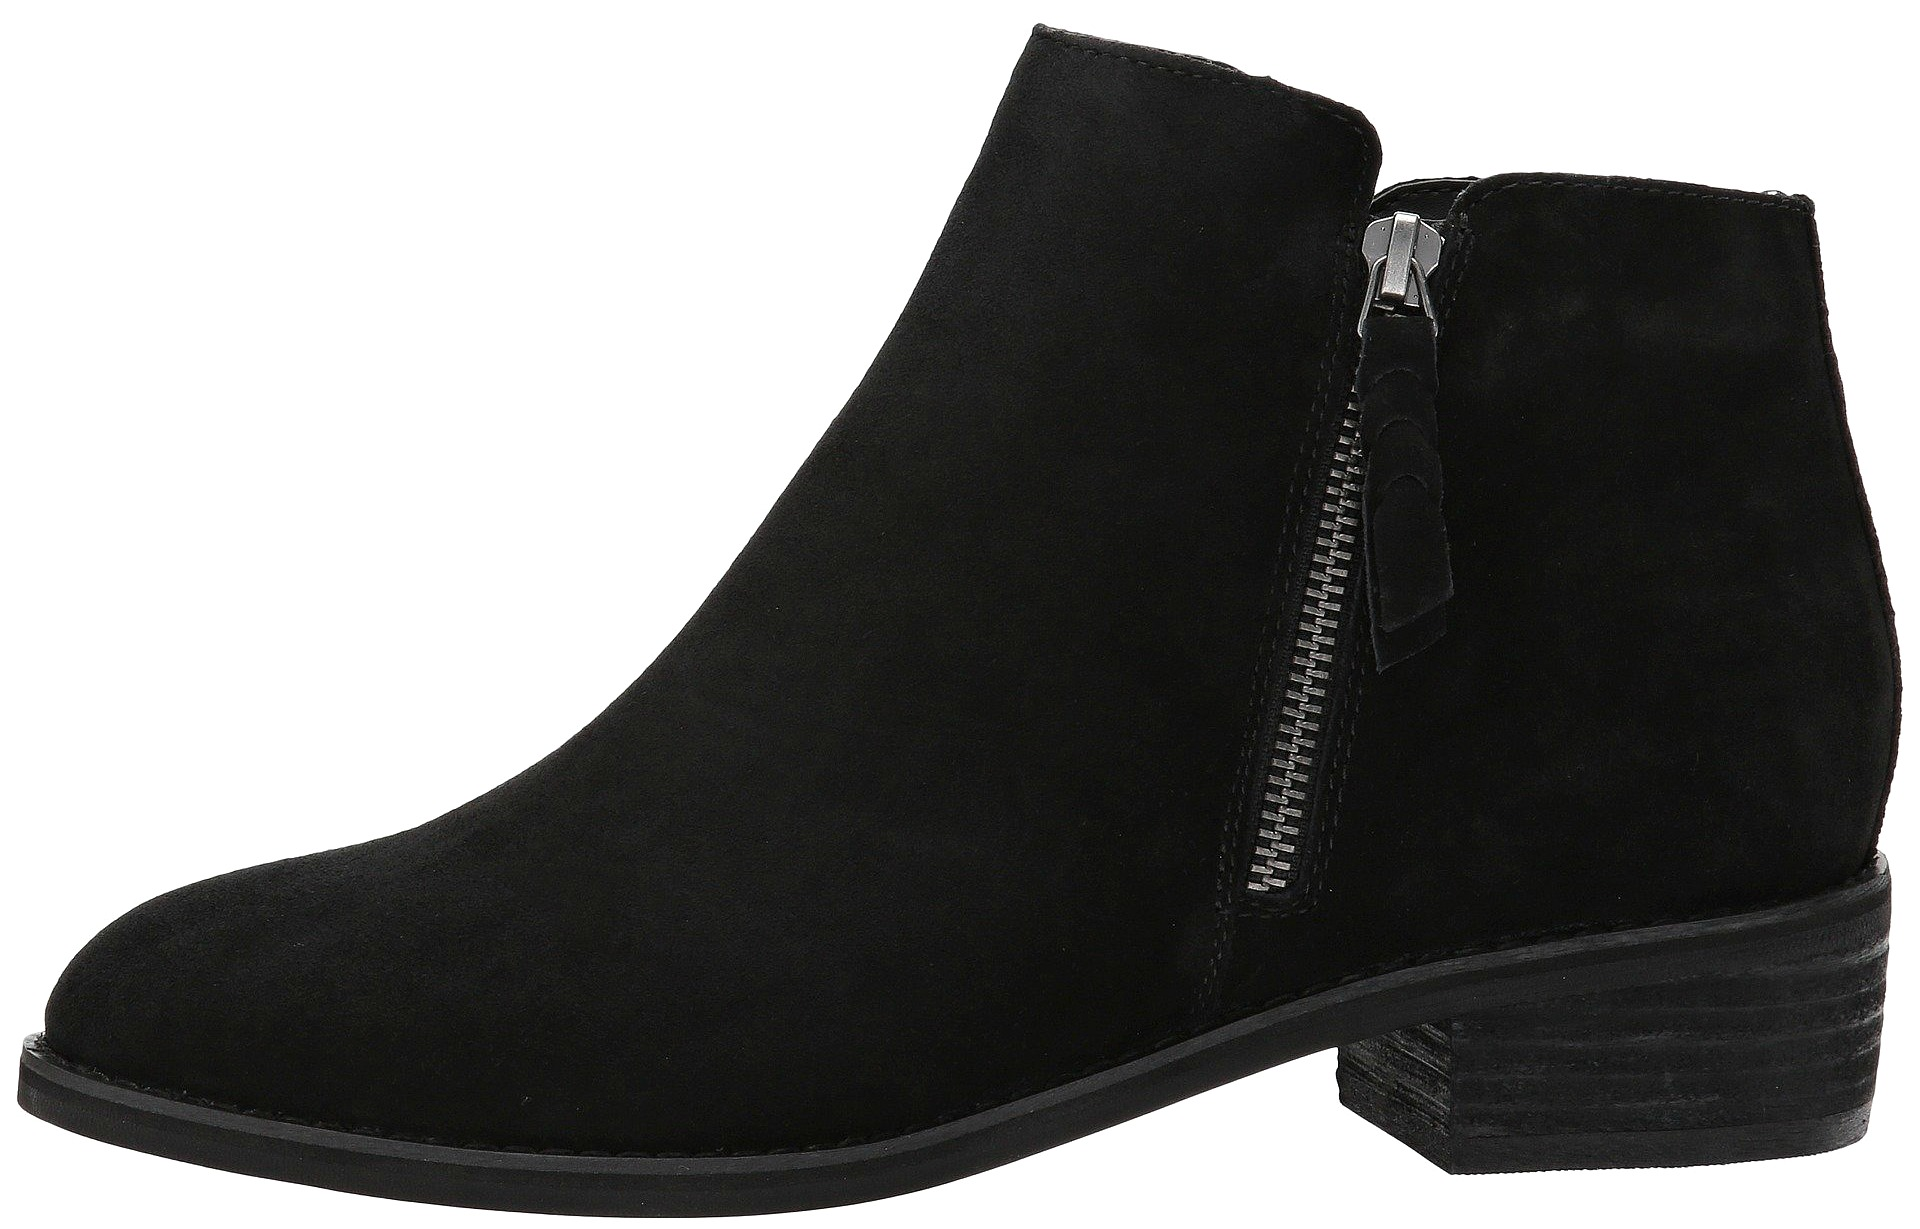 44312db1f870 10 Best Black Ankle Boots for Walking